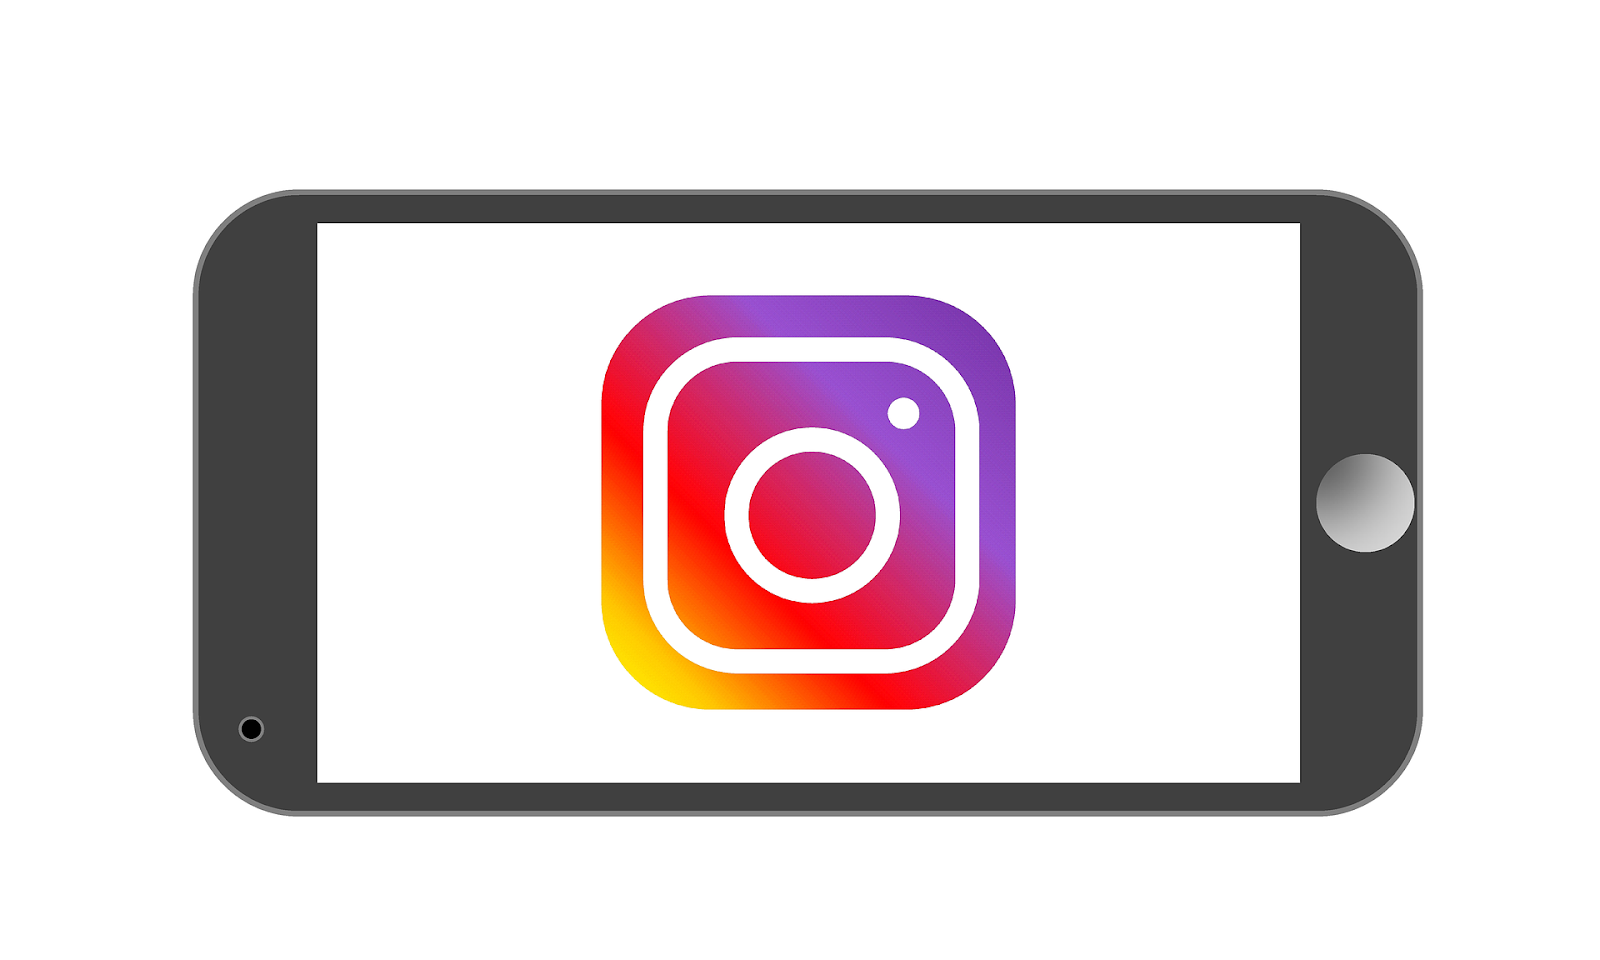 Sell feet pictures on Instagram and earn money